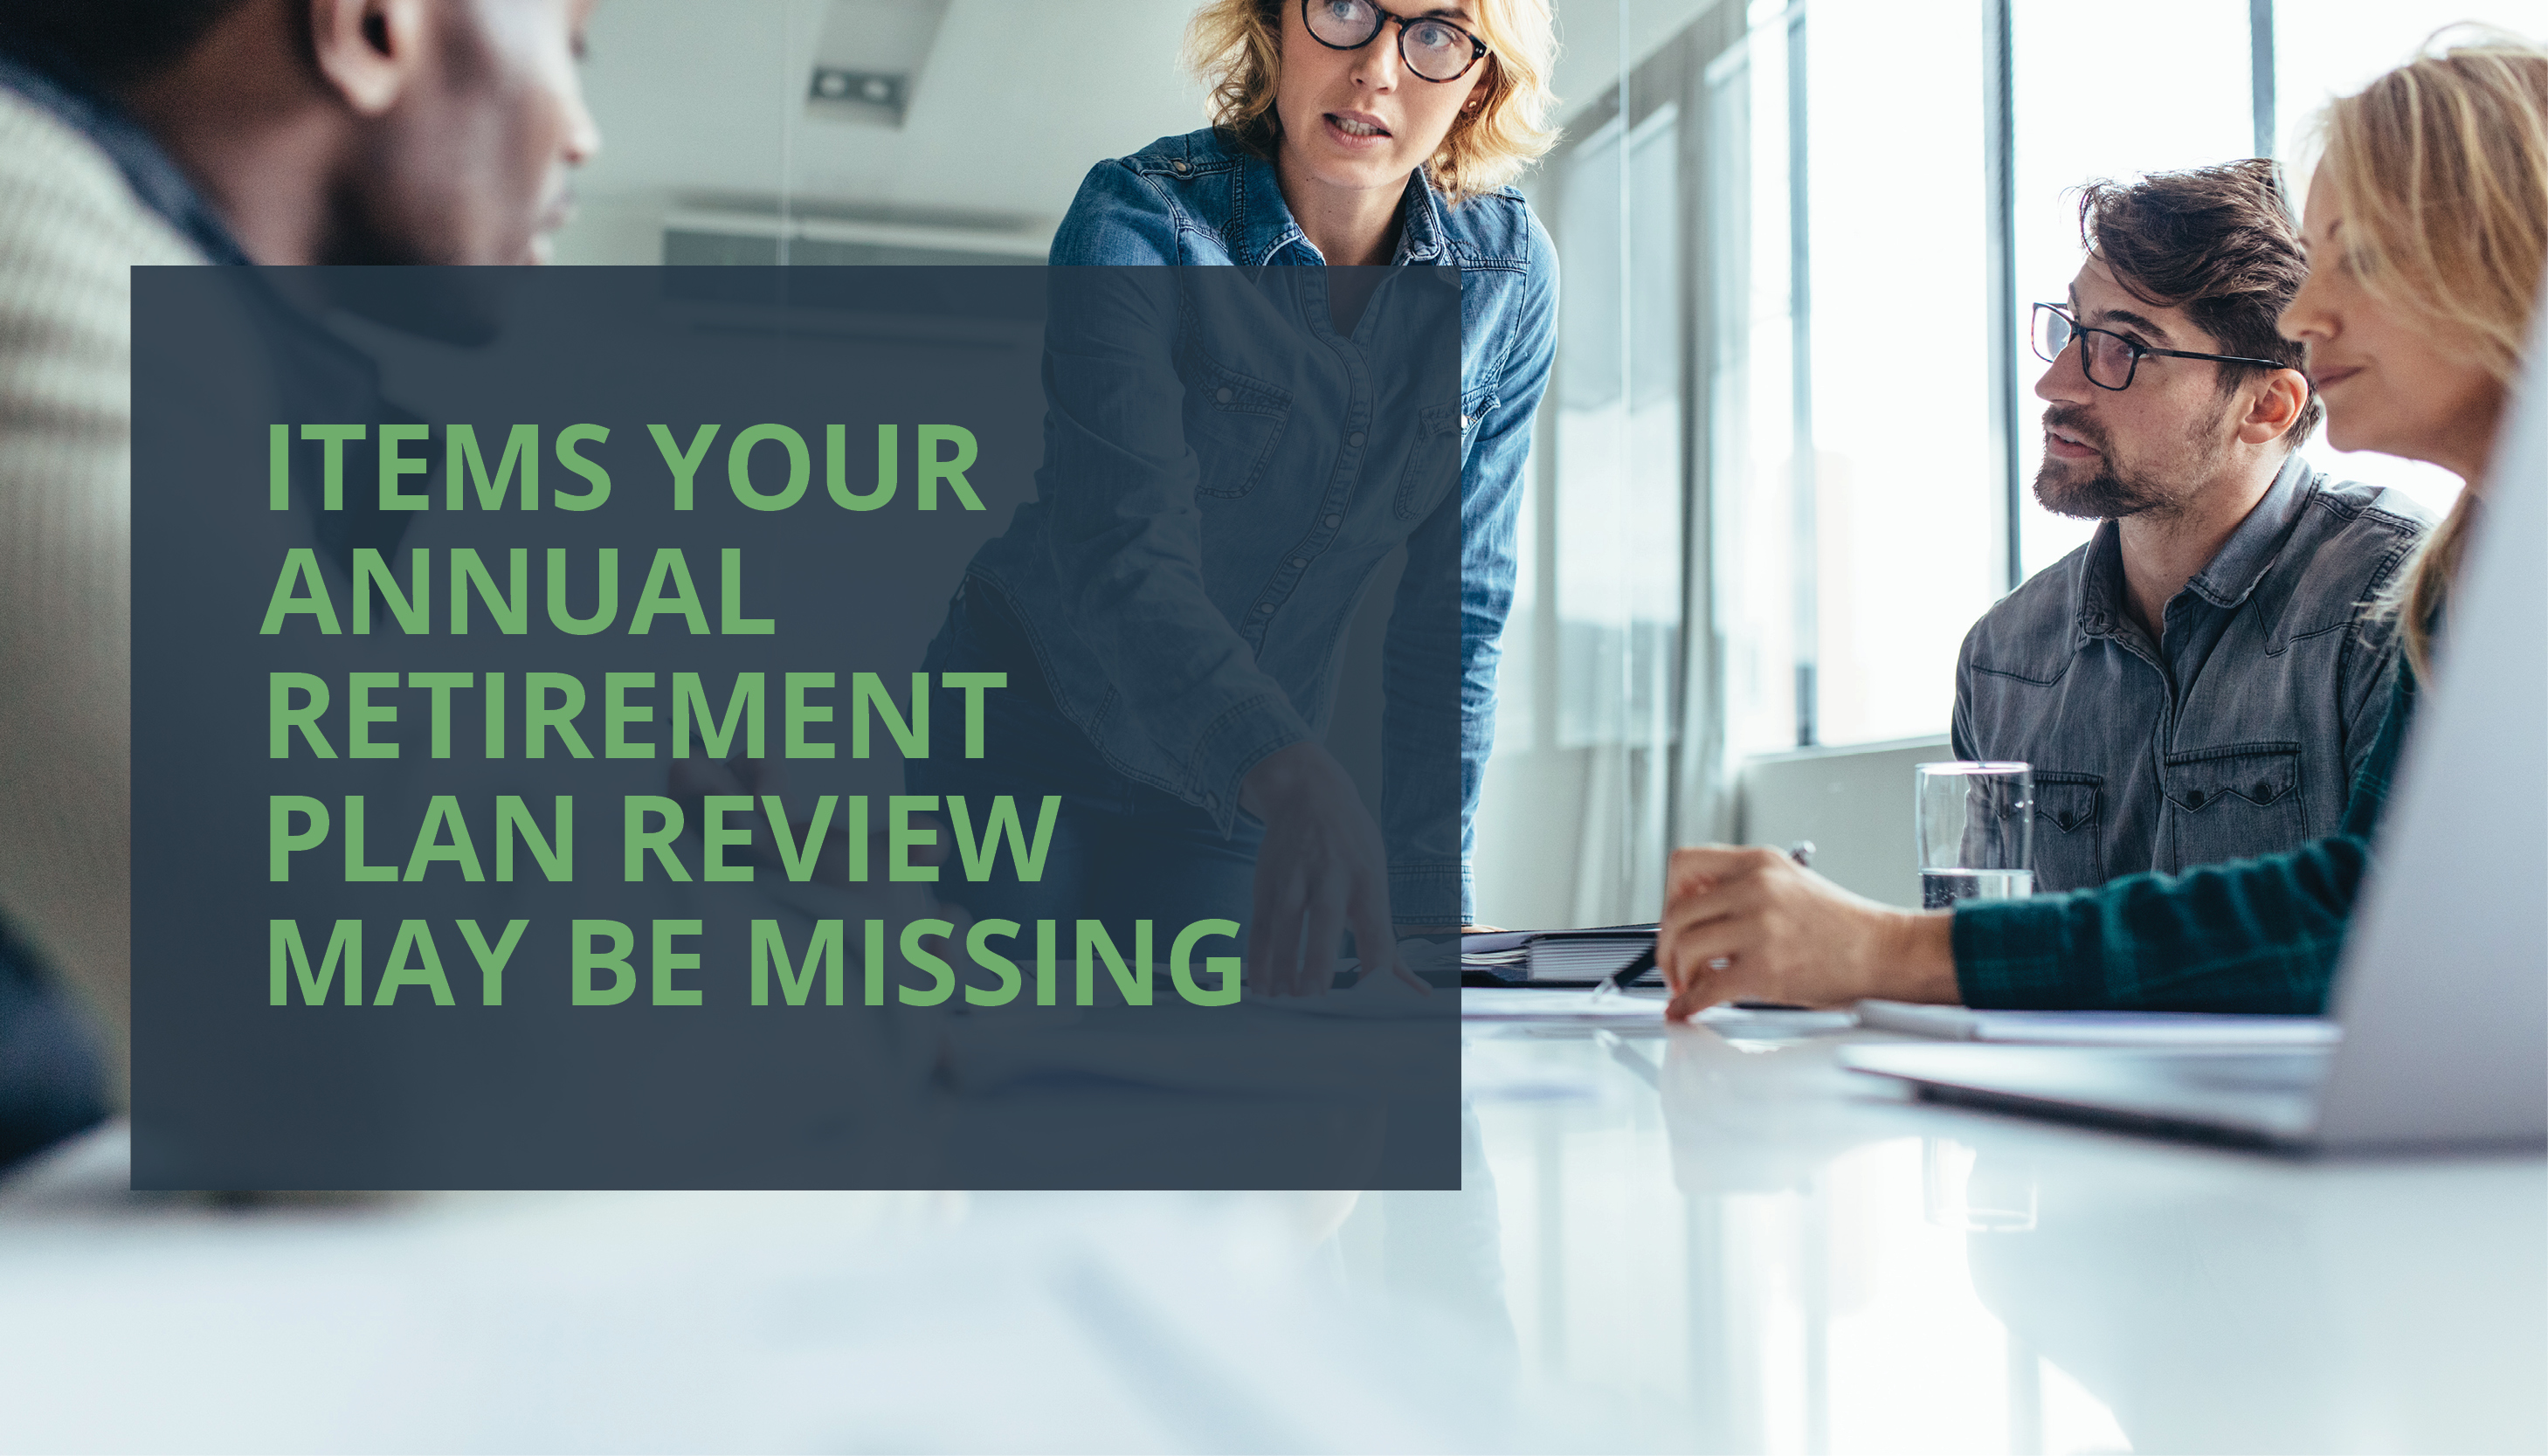 RPM Q1 2018_Pulse Image_Blog Article 3_Items Your Annual Retirement Plan Review May Be Missing